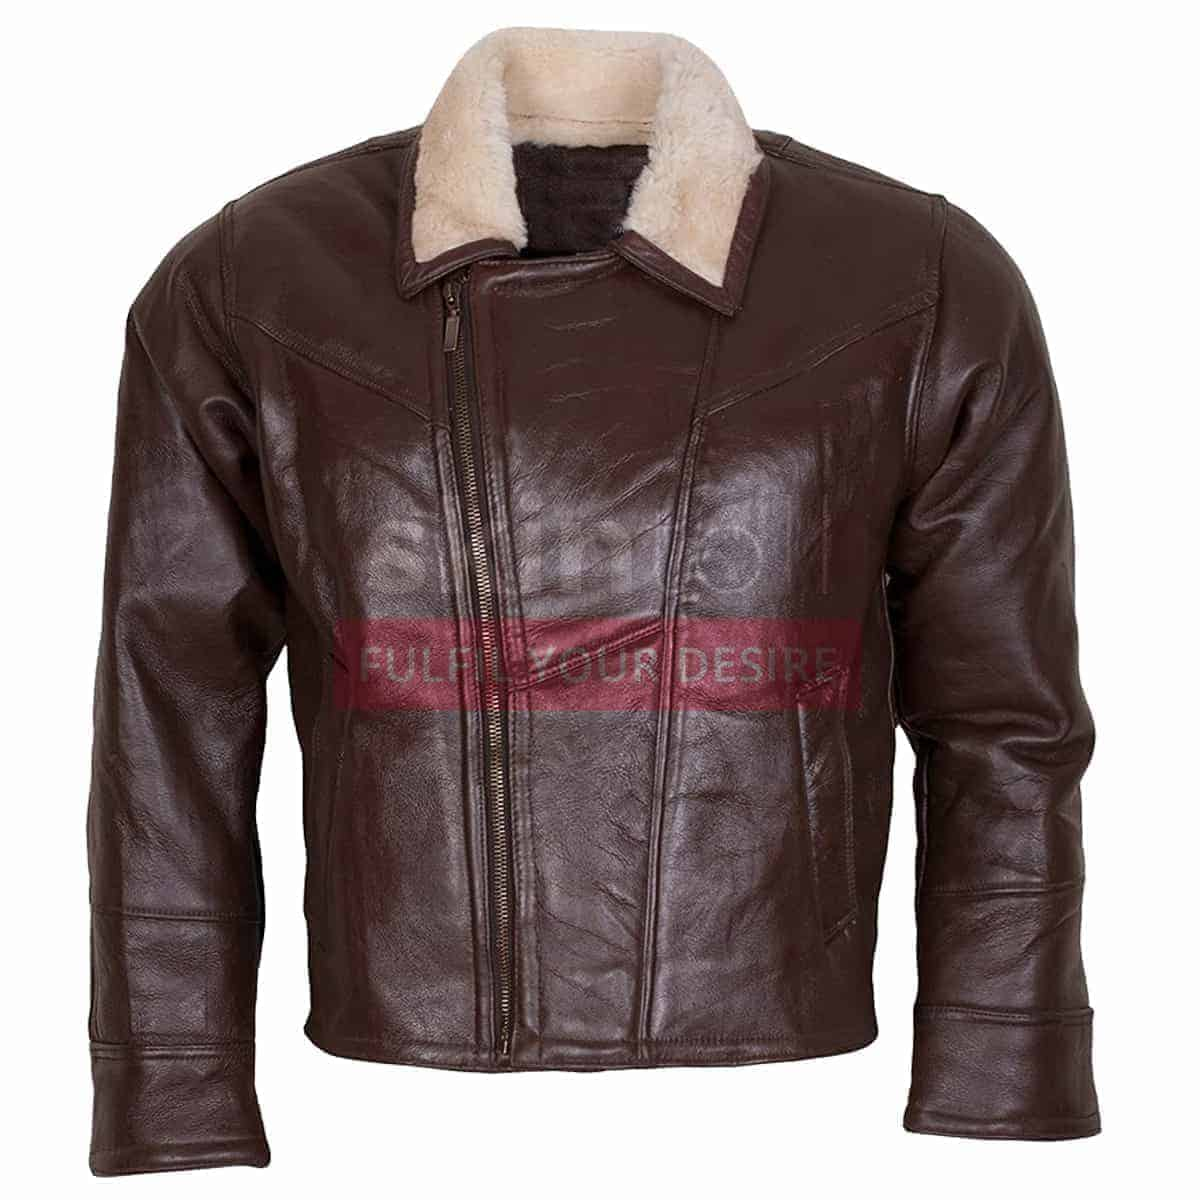 Are leather jackets warm